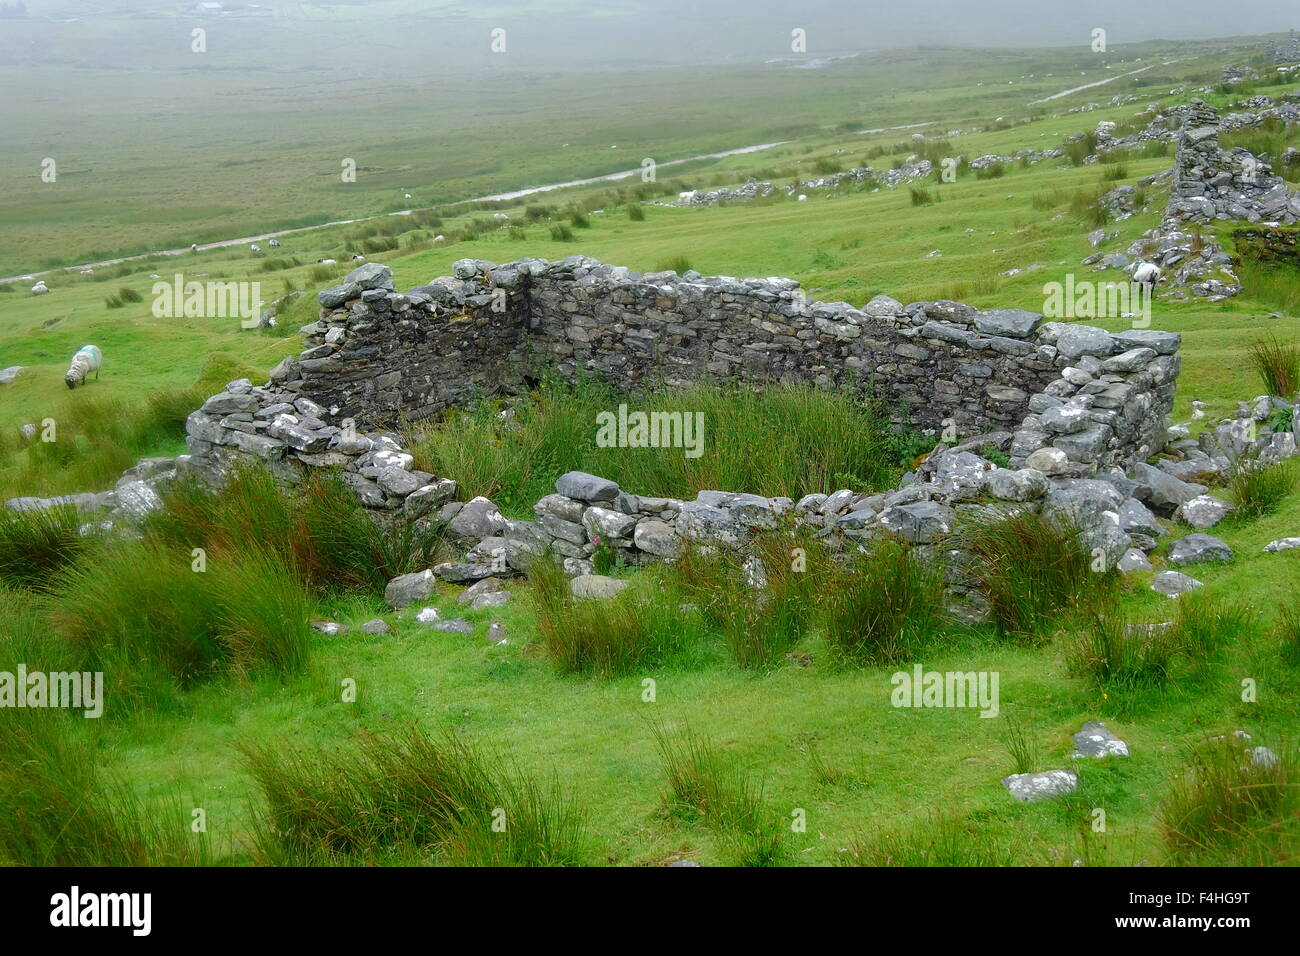 Deserted house at Slievemore, Achill Island, Ireland - Stock Image